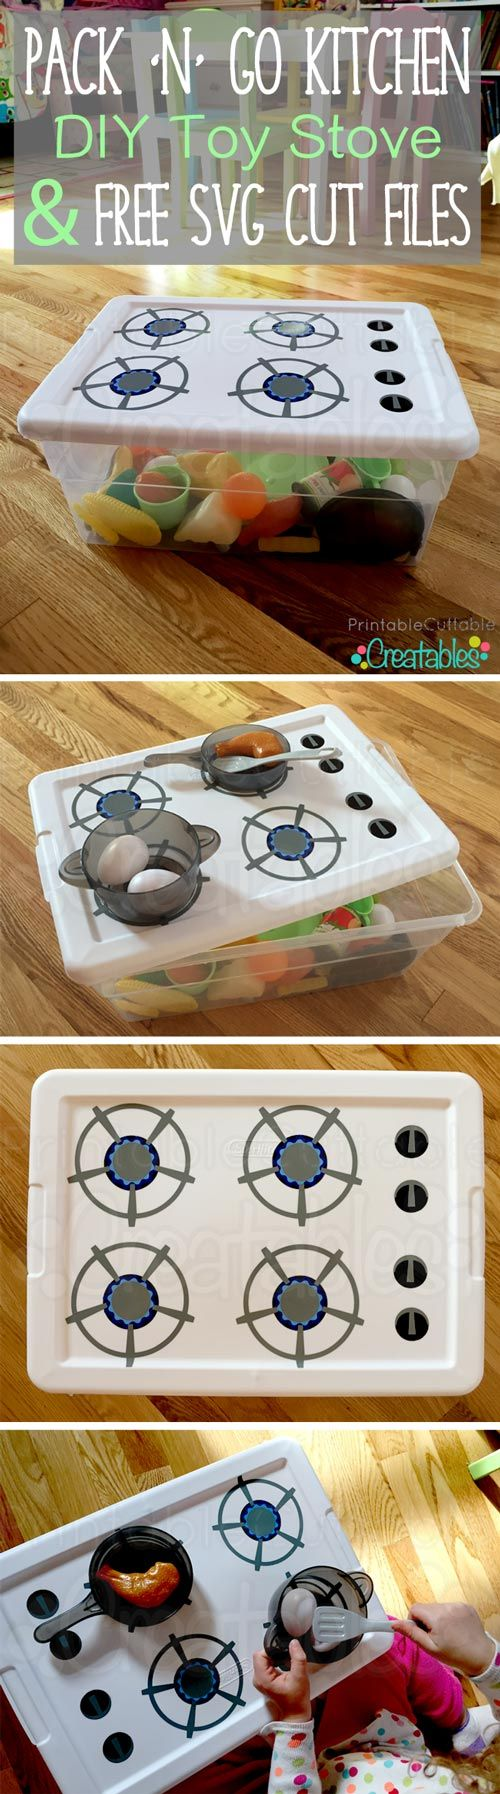 Pack 'N' Go Kitchen - DIY Toy Stove made with Silhouette Cameo - Tutorial + FREE SVG and Studio Cut Files!: